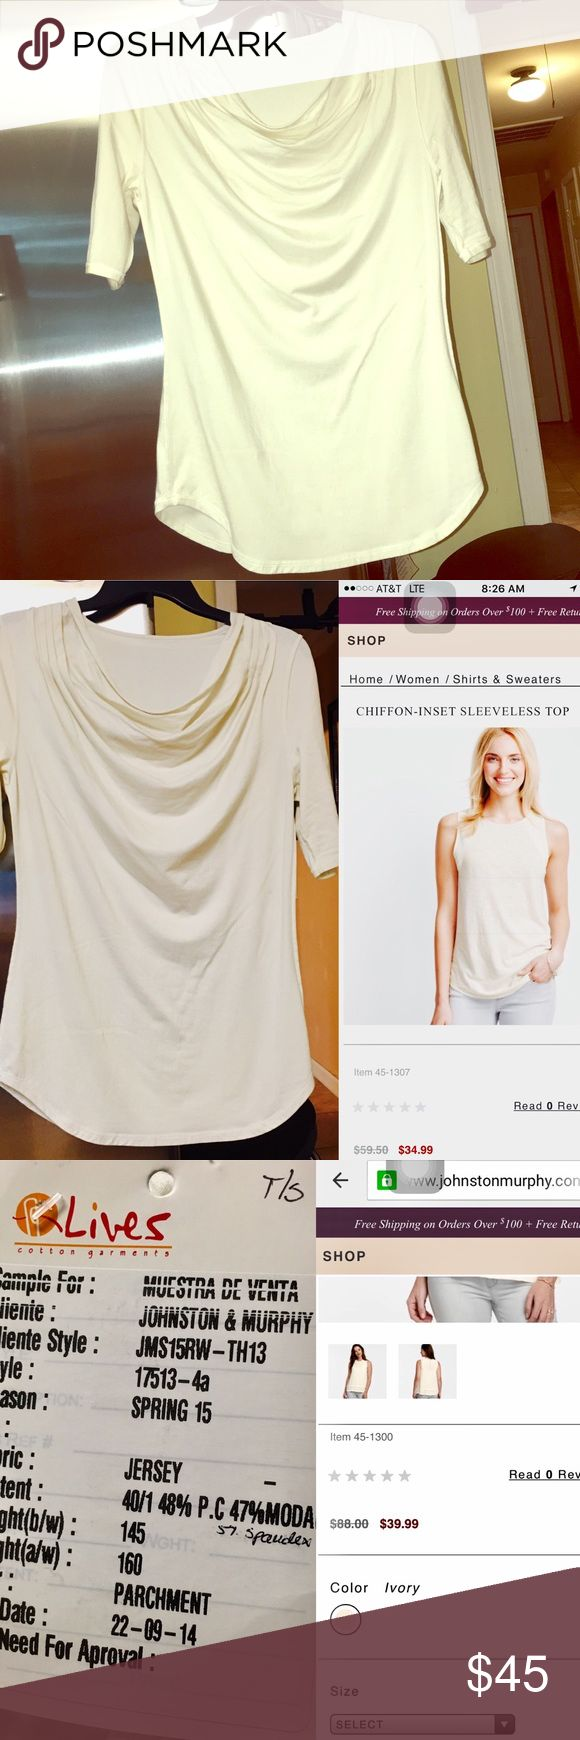 🔅*NWT* -J&M- SAMPLE TOP🔅W/FREE GIFTS!😍🎁👏🏼💓 🔅BRAND NEW & NEVER WORN🔅JOHNSTON & MURPHY SAMPLE TOP DUE IN STORES THIS SPRING🔅Get ur hands on this *BRAND NEW* J&M Ivory top NOW before its sold out in stores! U can see from the pics above these super sleek & fashionable tops from J&M do NOT run cheap once they are first placed for sale online & in retail stores- BUT HERE pay not even HALF the cost AND get a TON OF CUTE NEW FREE GIFTS🔅BUNDLE W/ ONLY 2 ITEMS & GET AN ADDITIONAL 15% OFF…